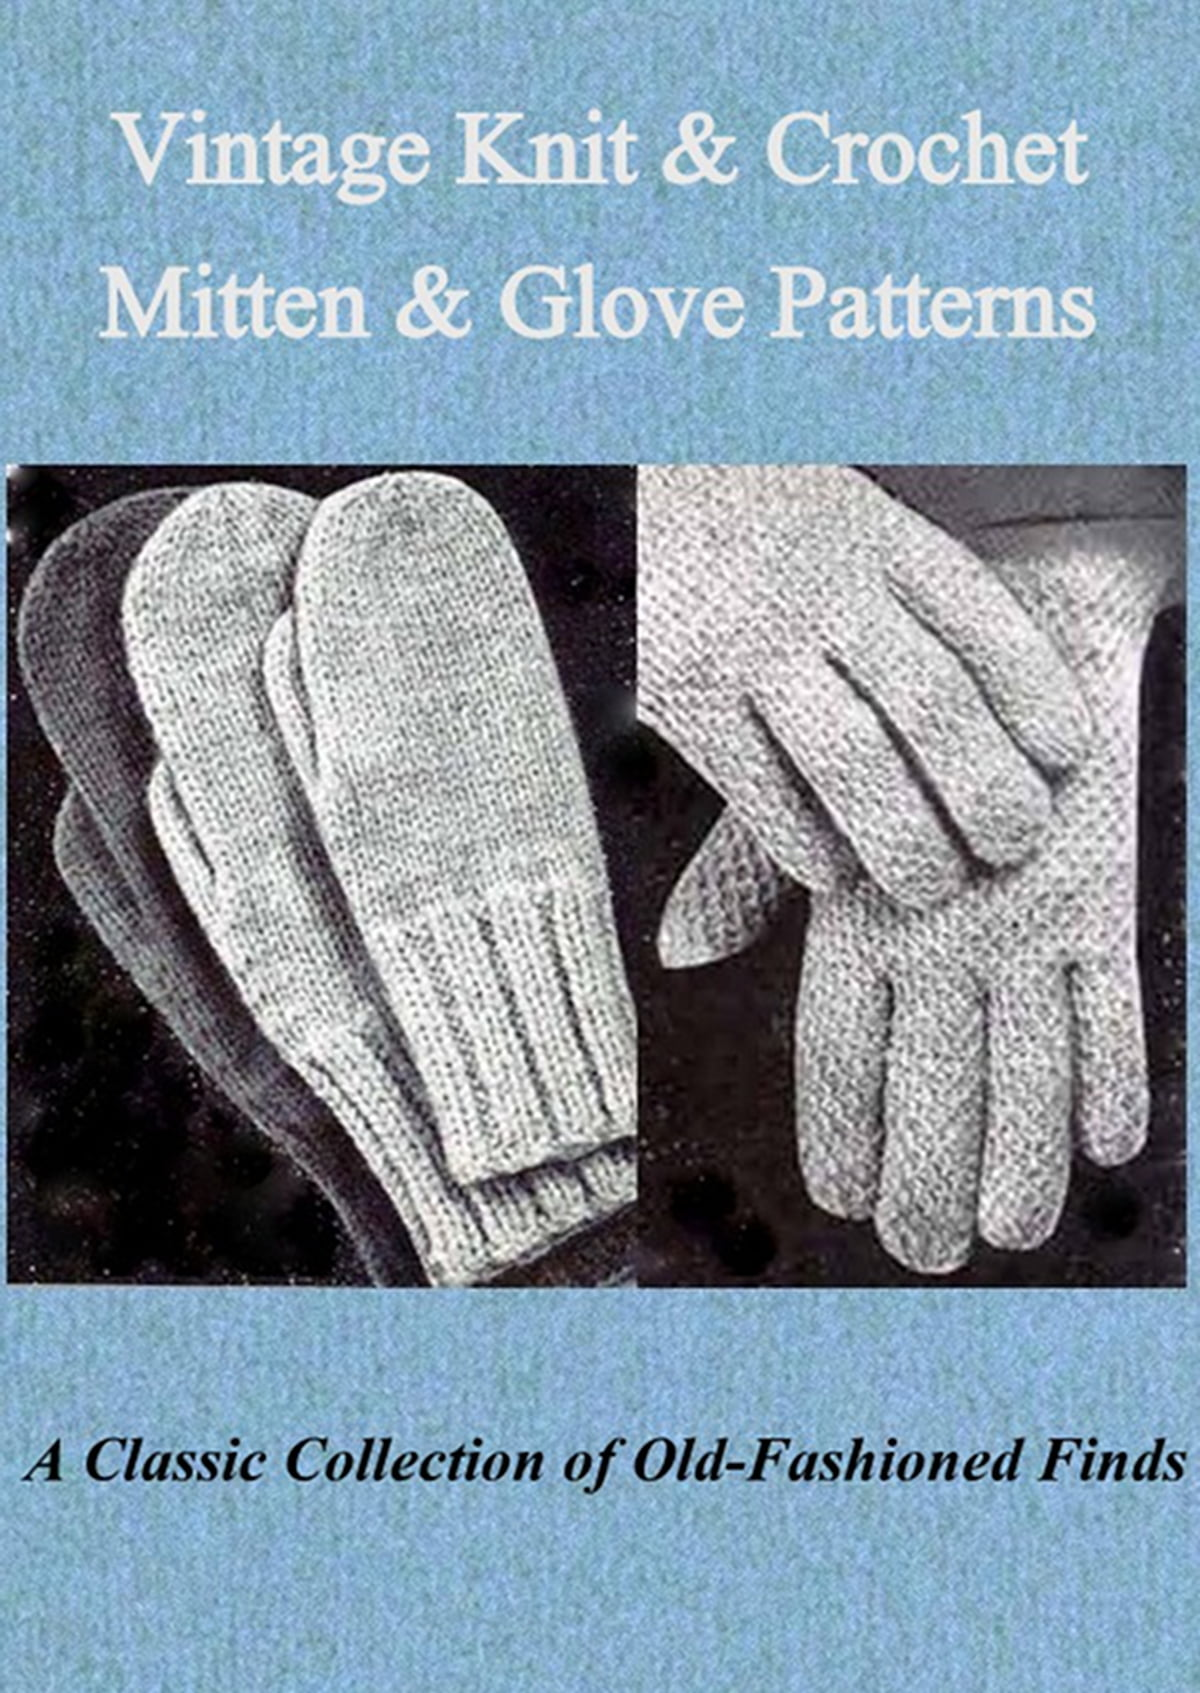 Vintage Knit & Crochet Mitten & Glove Patterns eBook by Kimberly Em ...